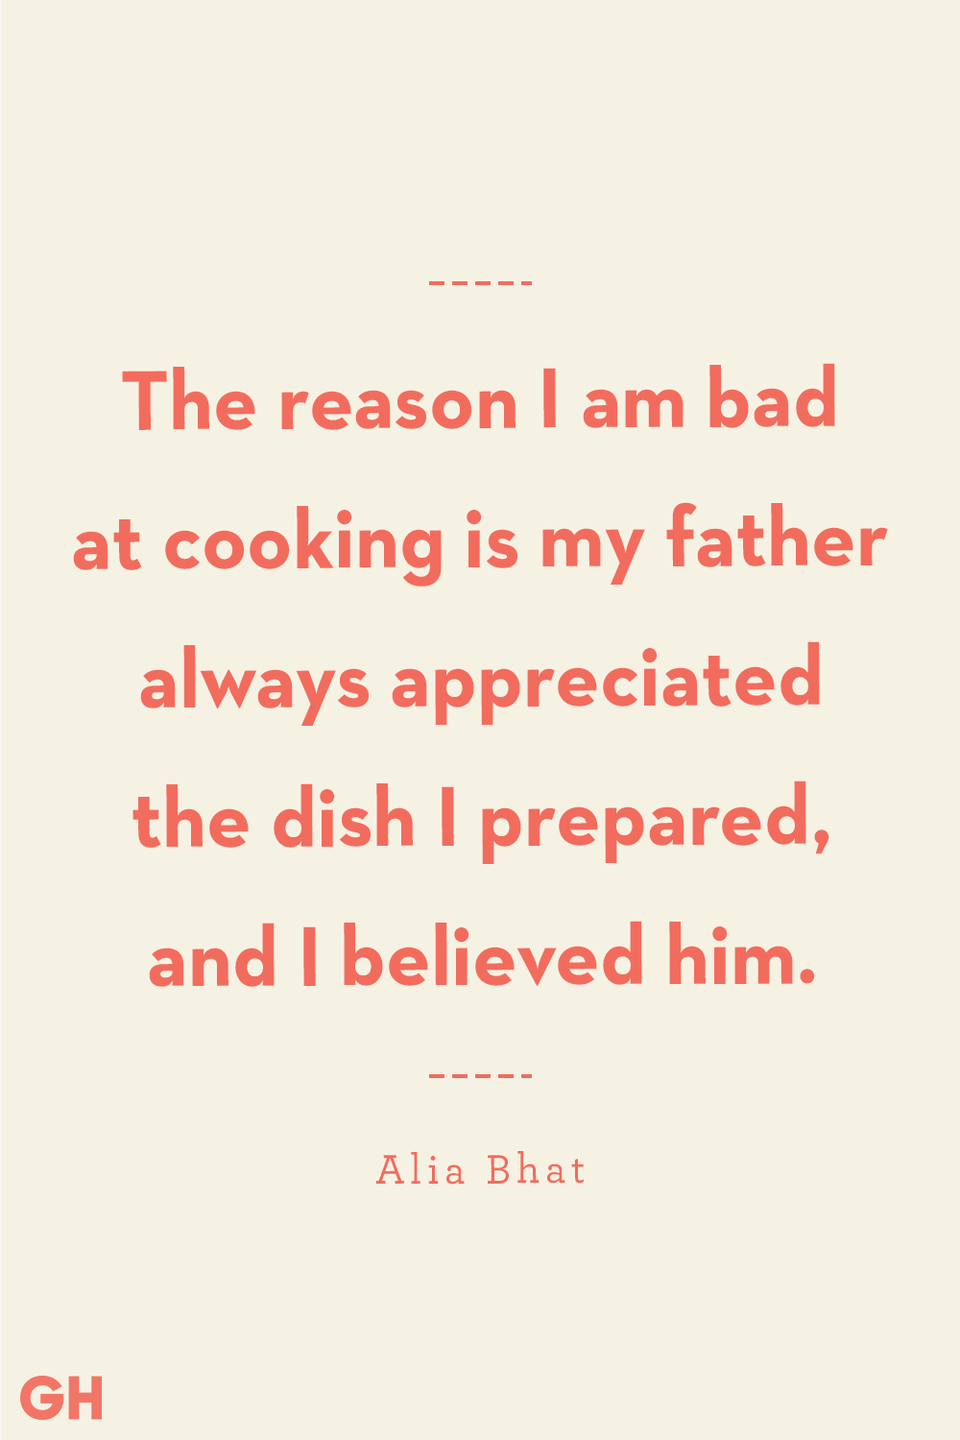 <p>The reason I am bad at cooking is my father always appreciated the dish I prepared, and I believed him.</p>